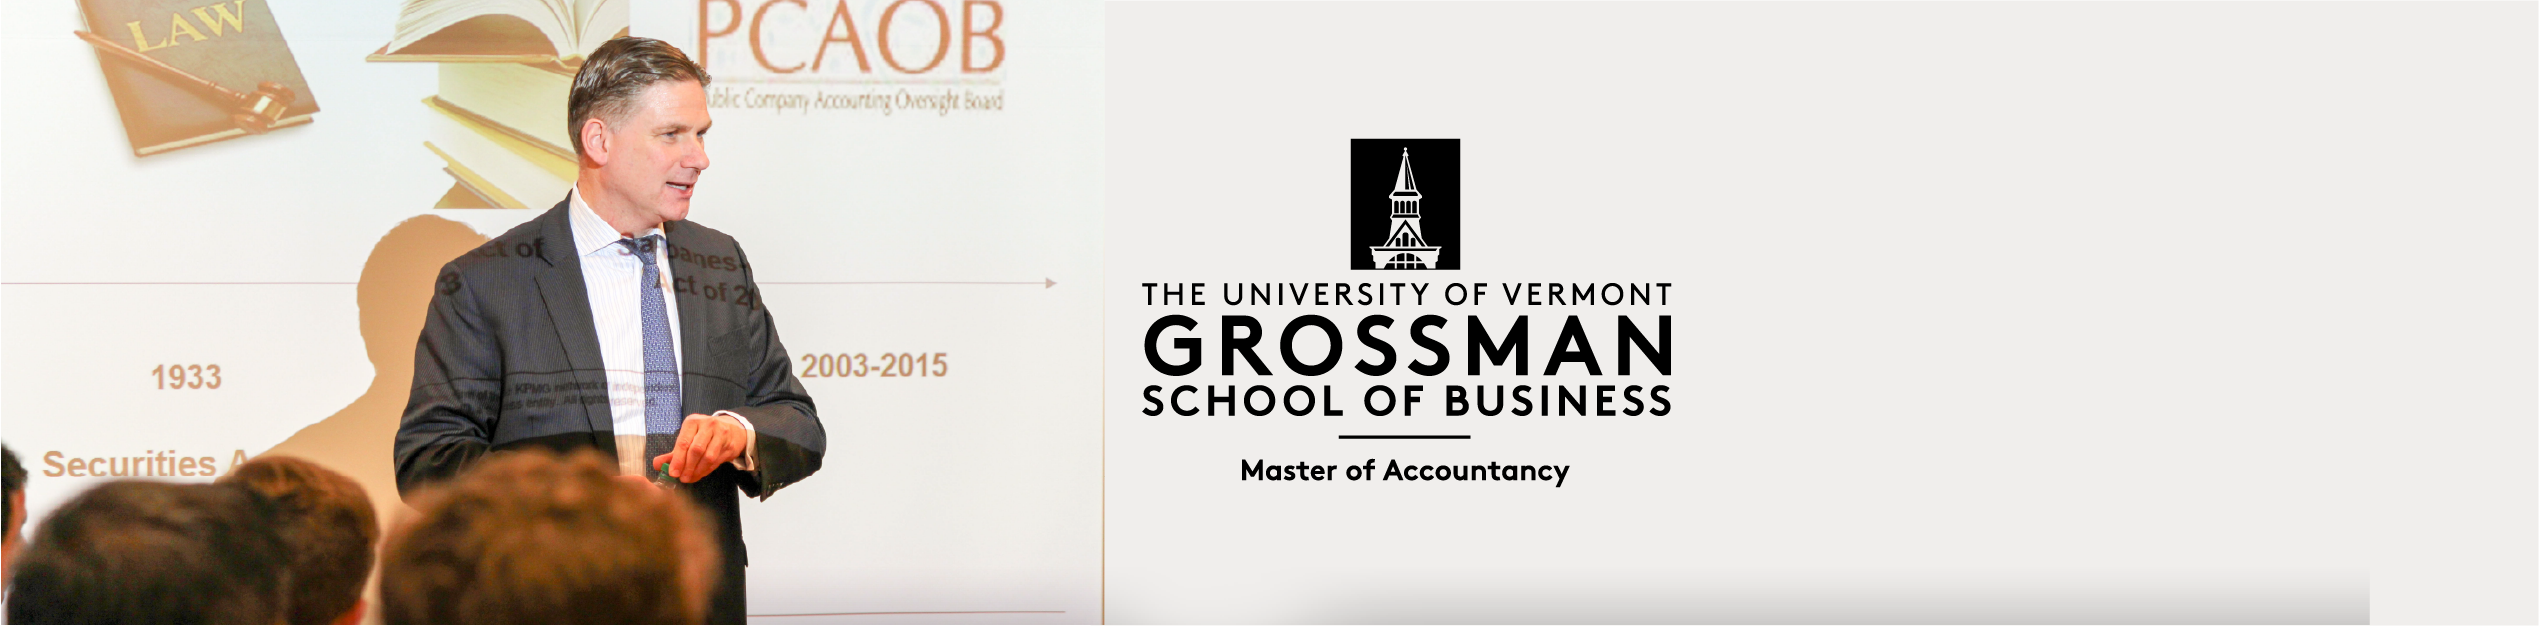 macc, uvm, master of accountancy